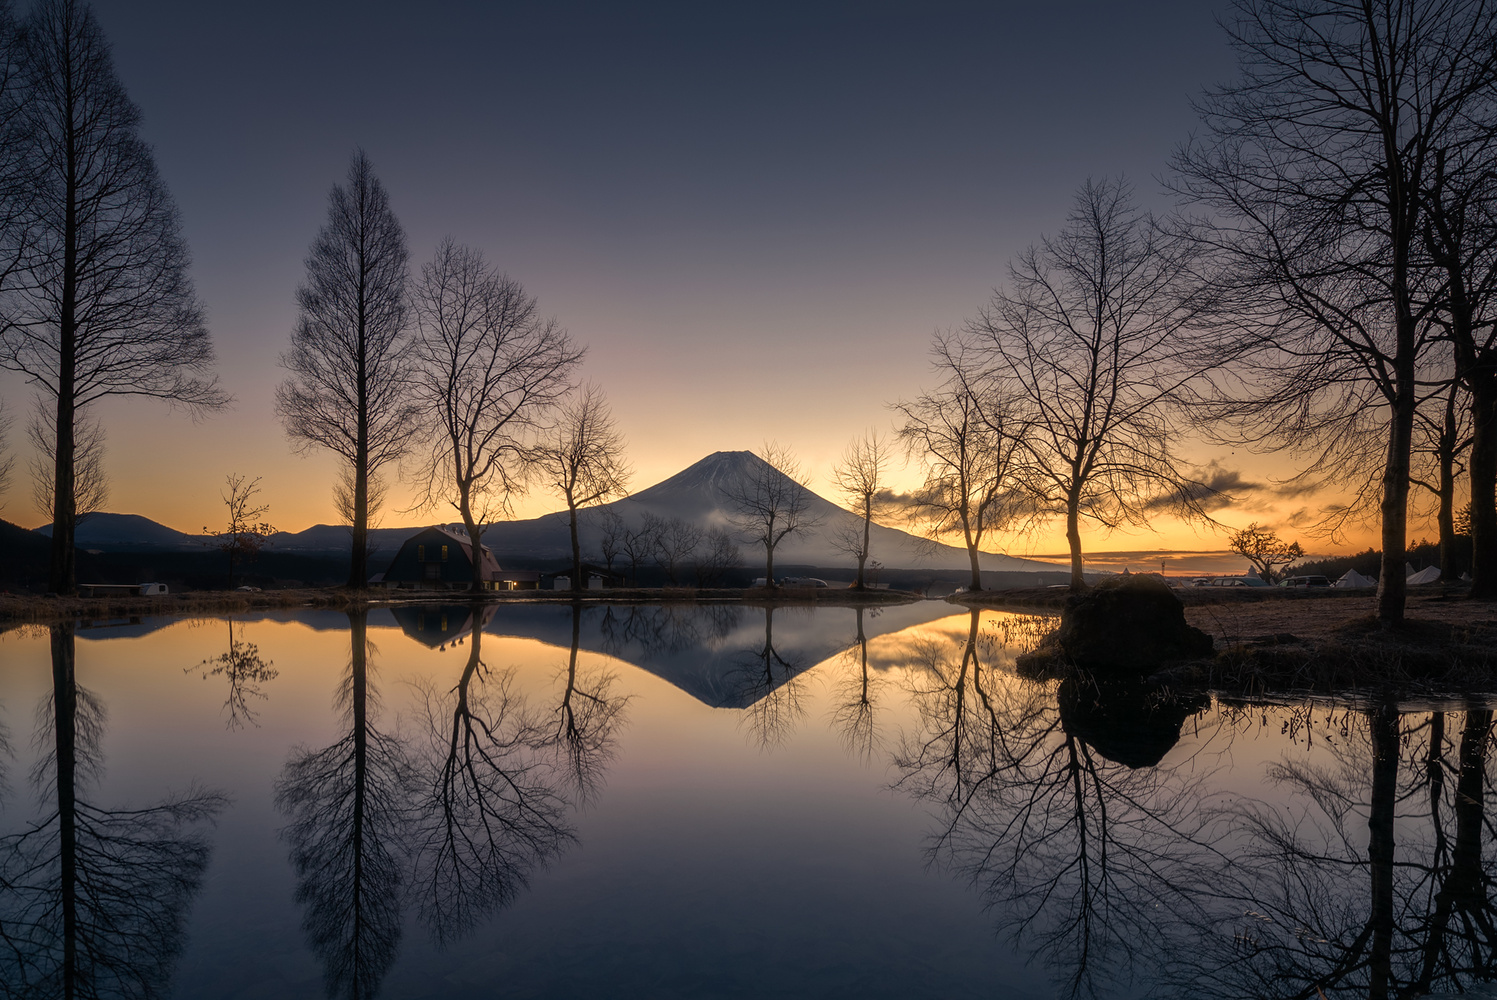 Mt. Fuji by Shumon Saito